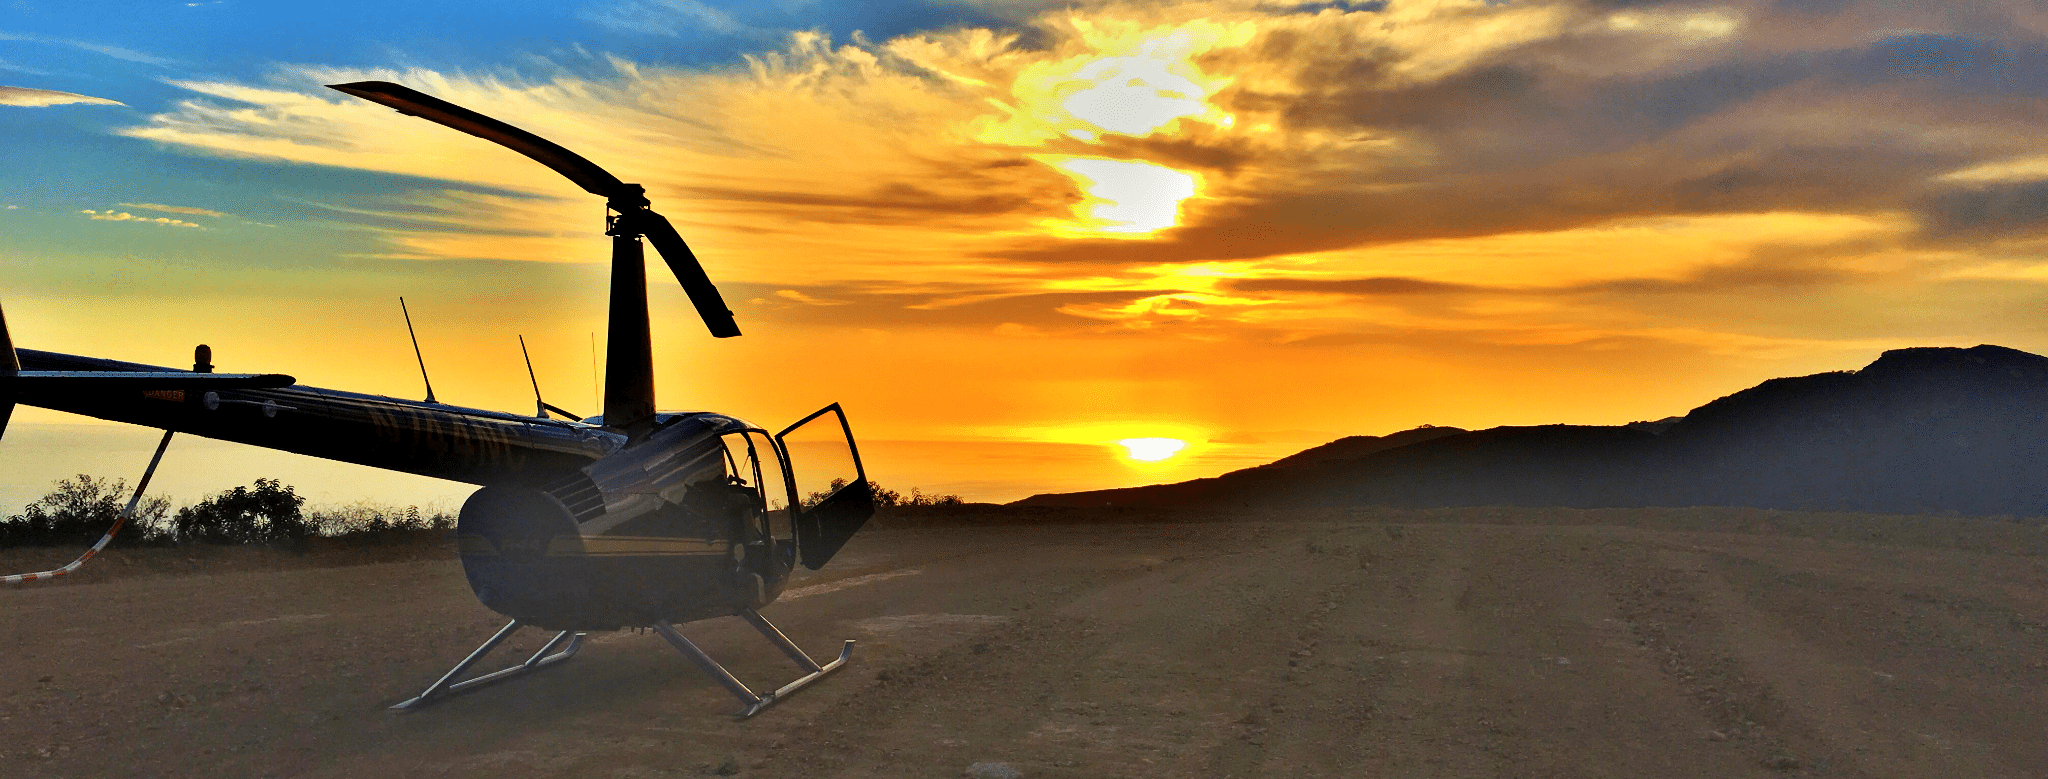 Los Angeles Helicopter Tours